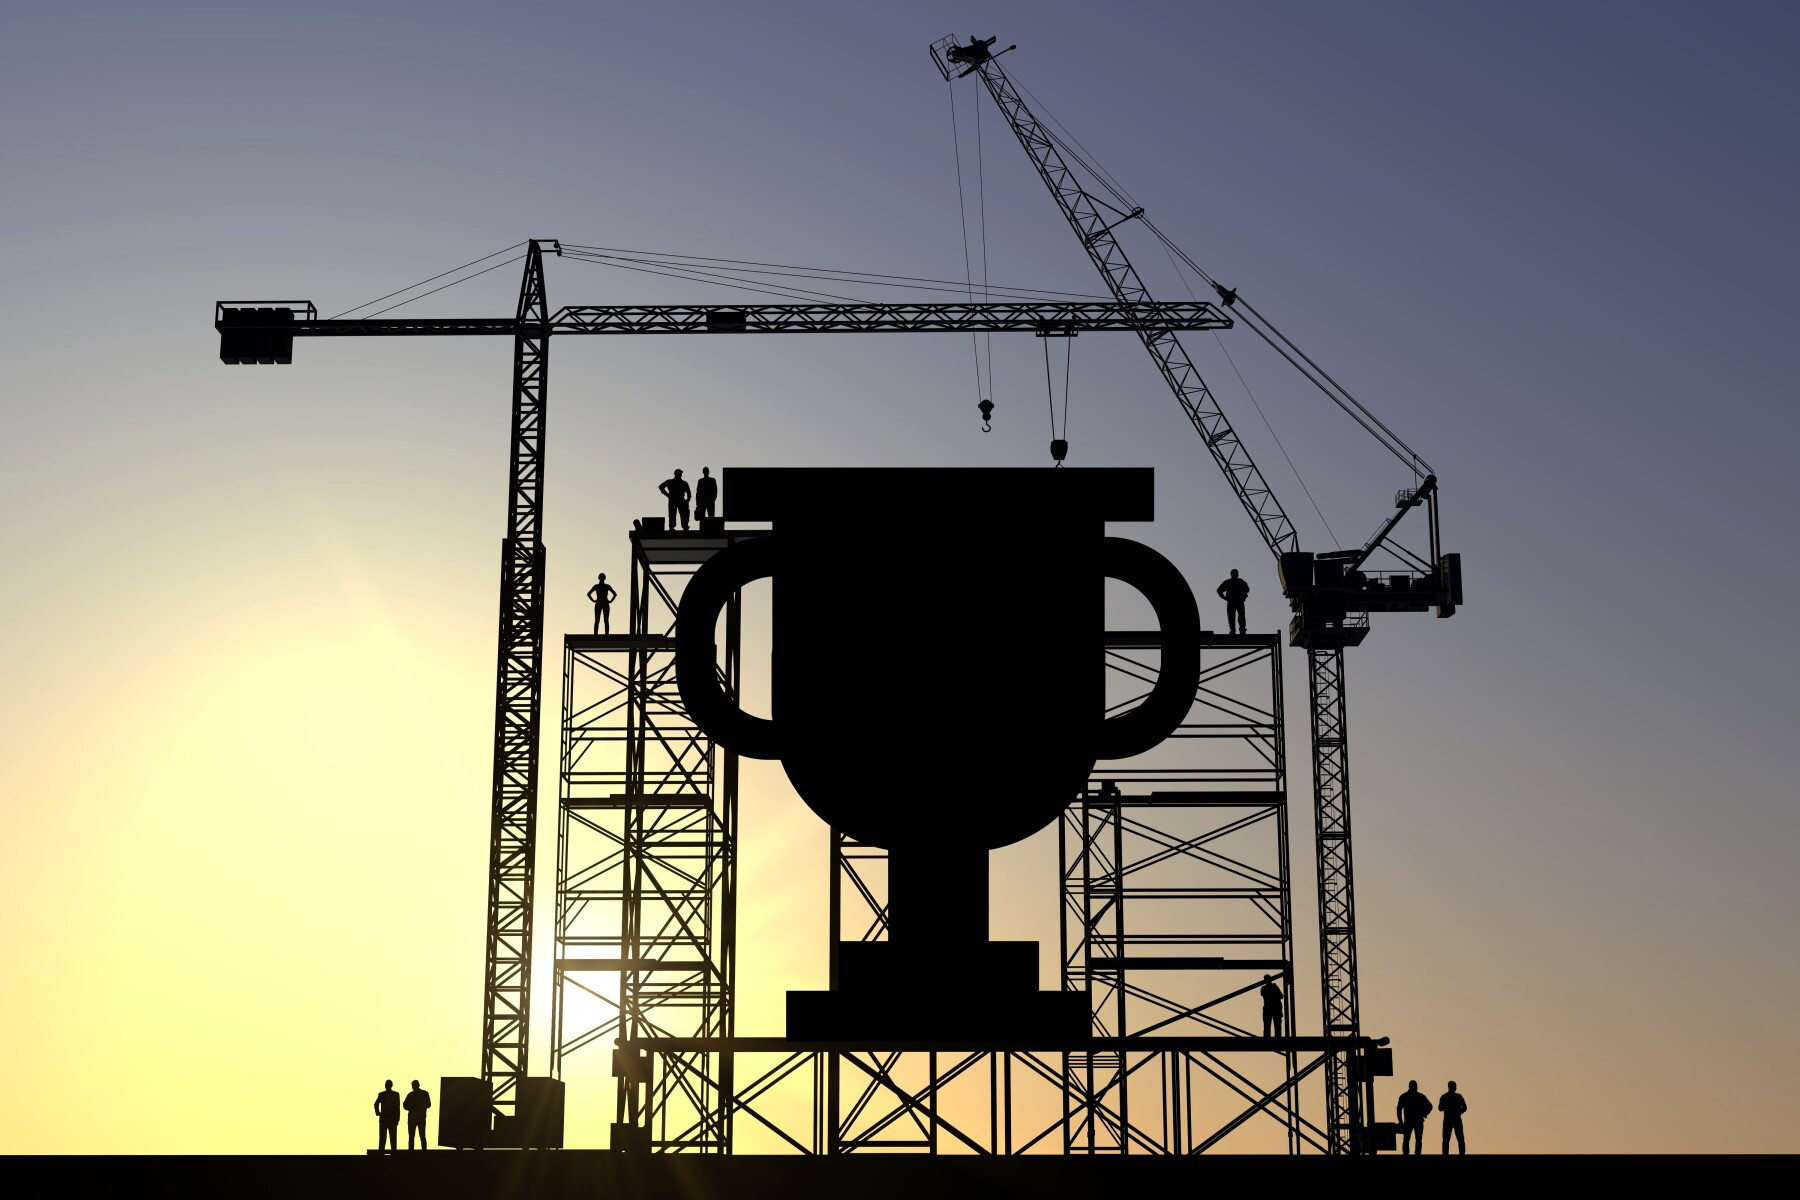 Trophy construction site